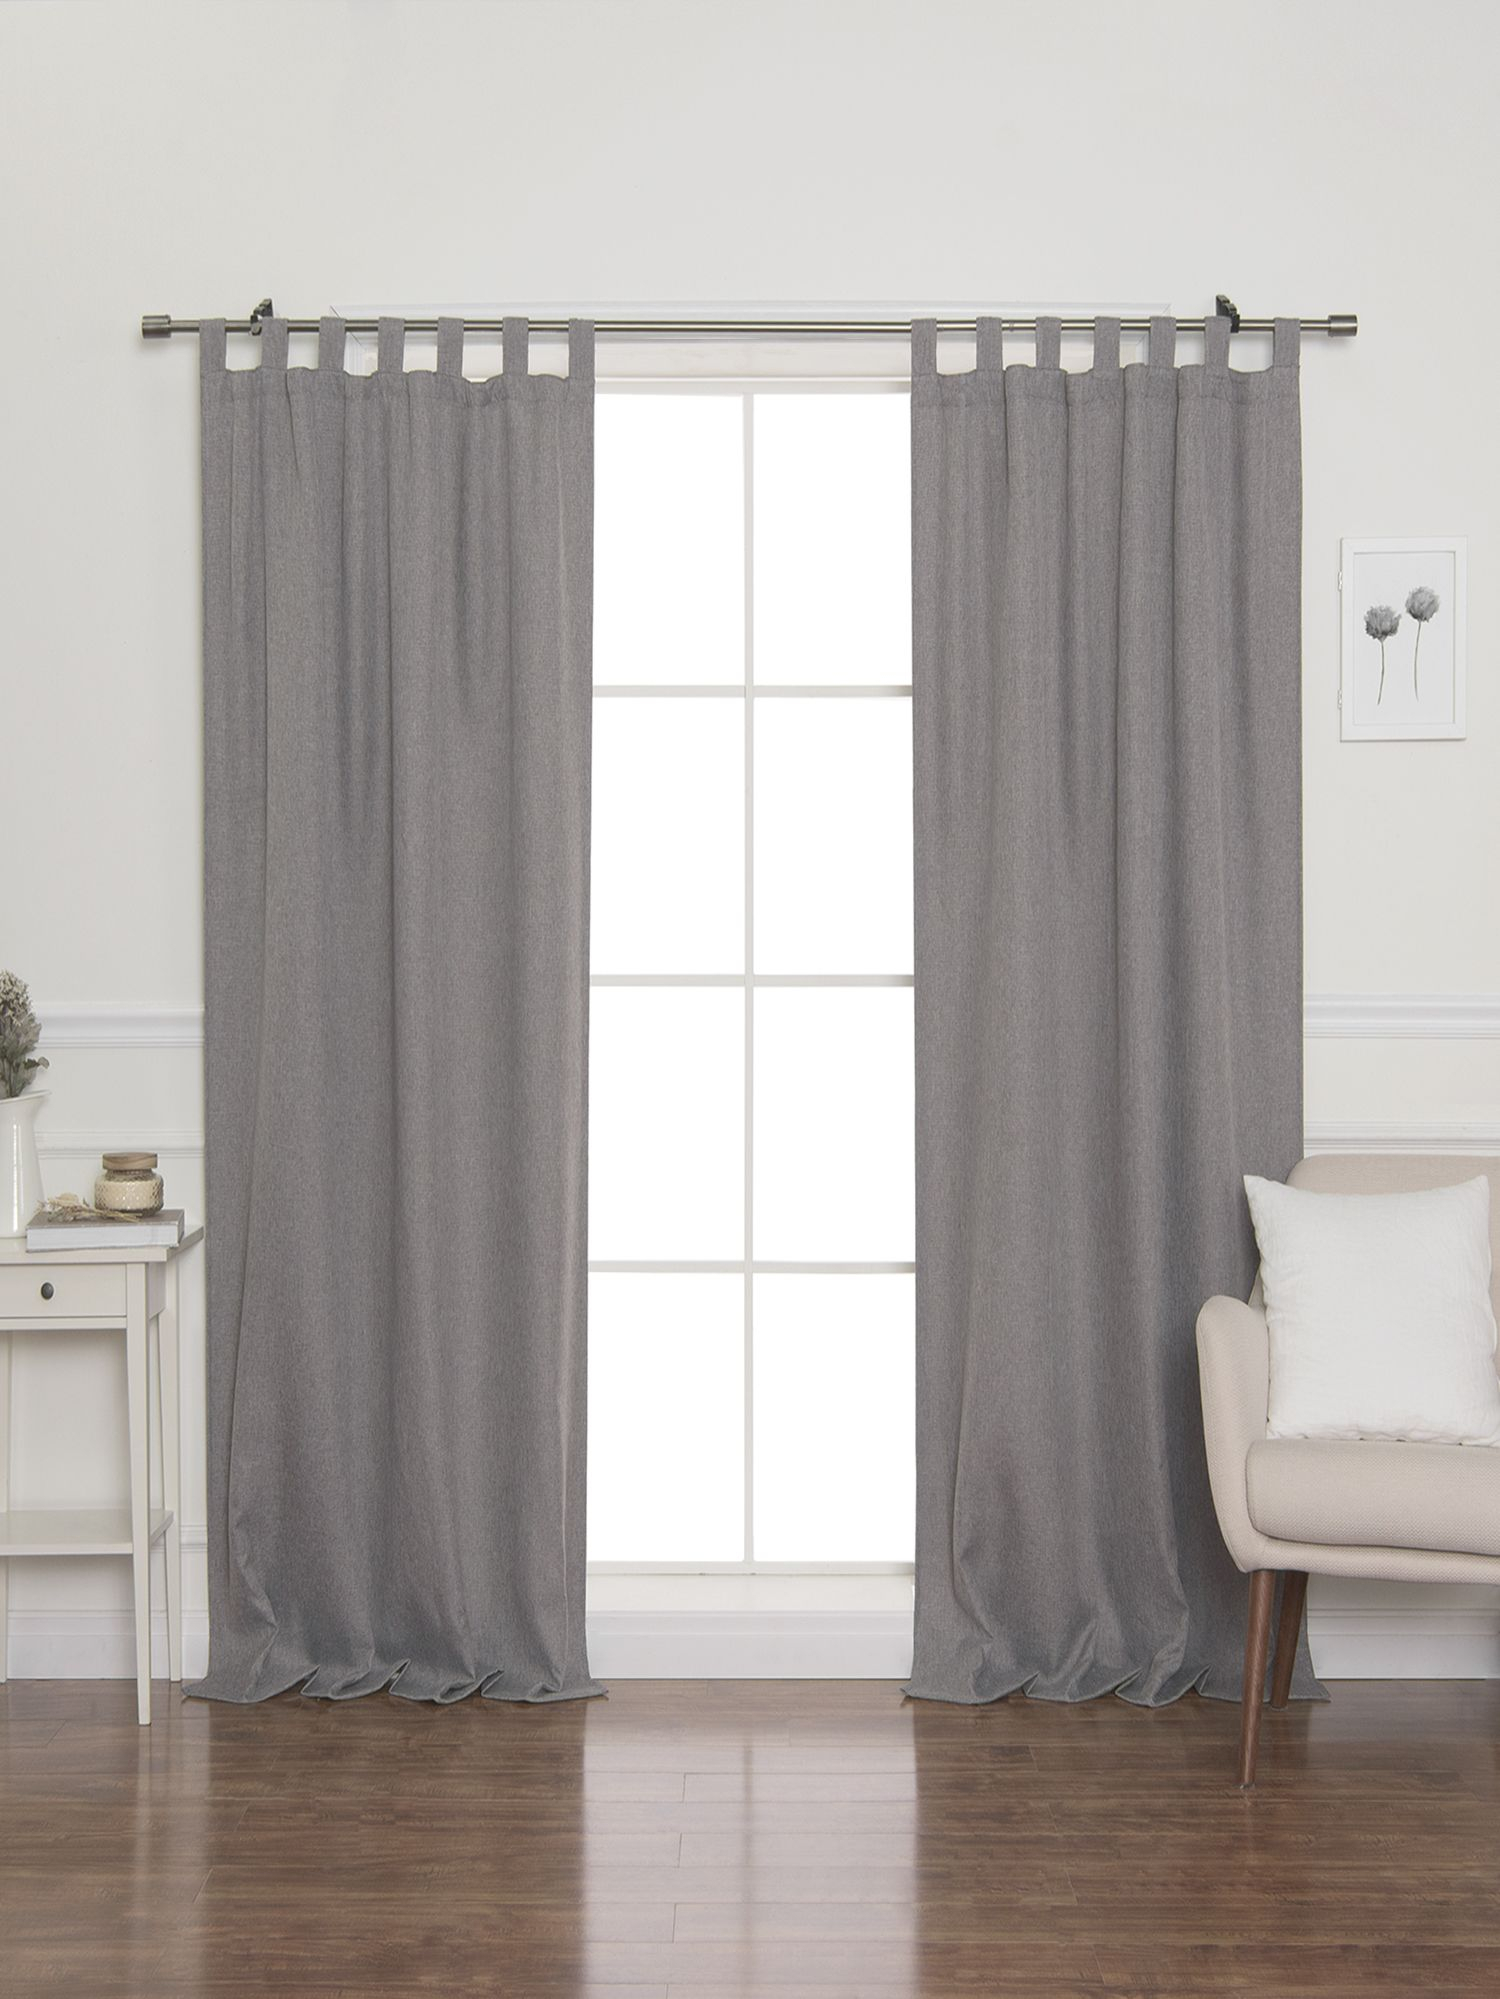 Faux Linen Blackout Tab Top Curtain With Faux Linen Blackout Curtains (View 8 of 20)